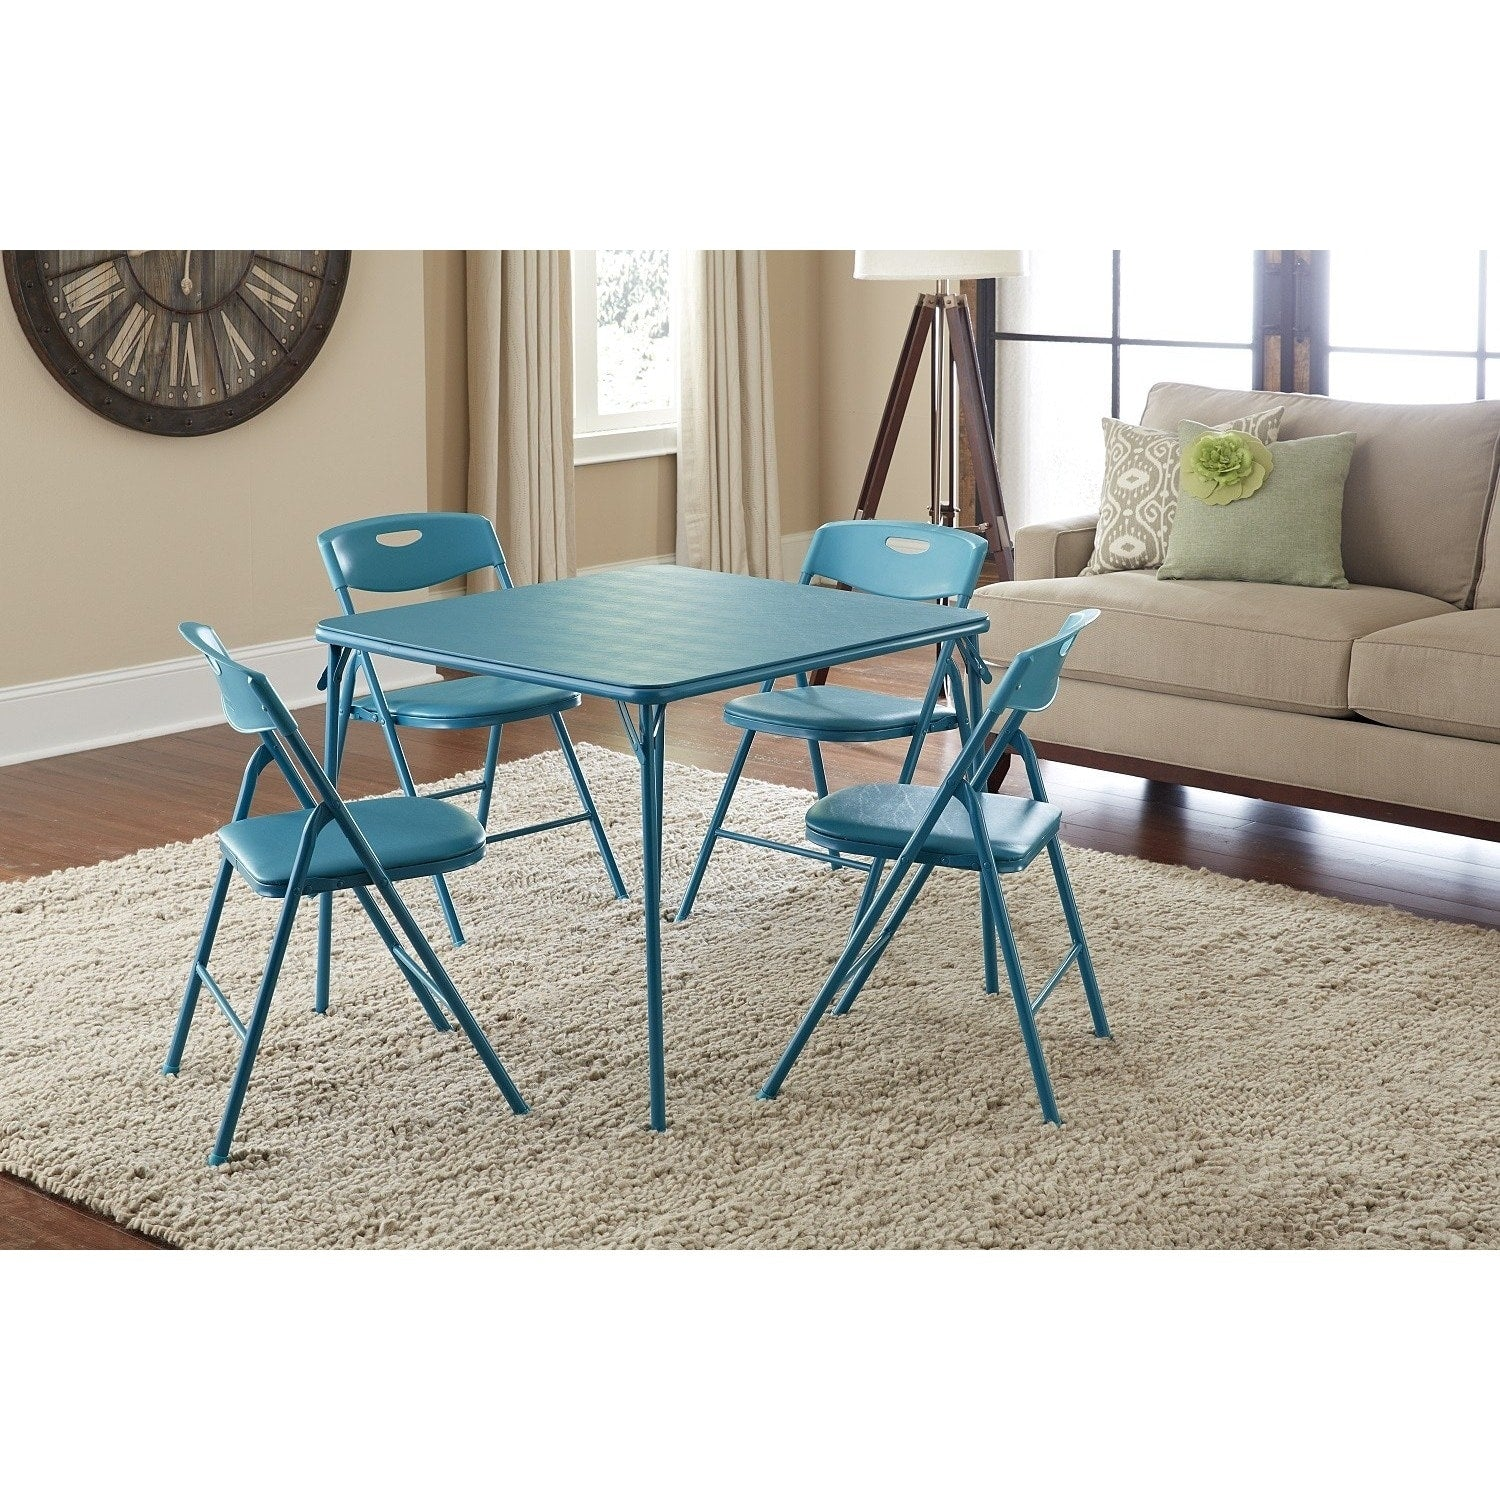 Five-Piece Folding Table and Chairs Set